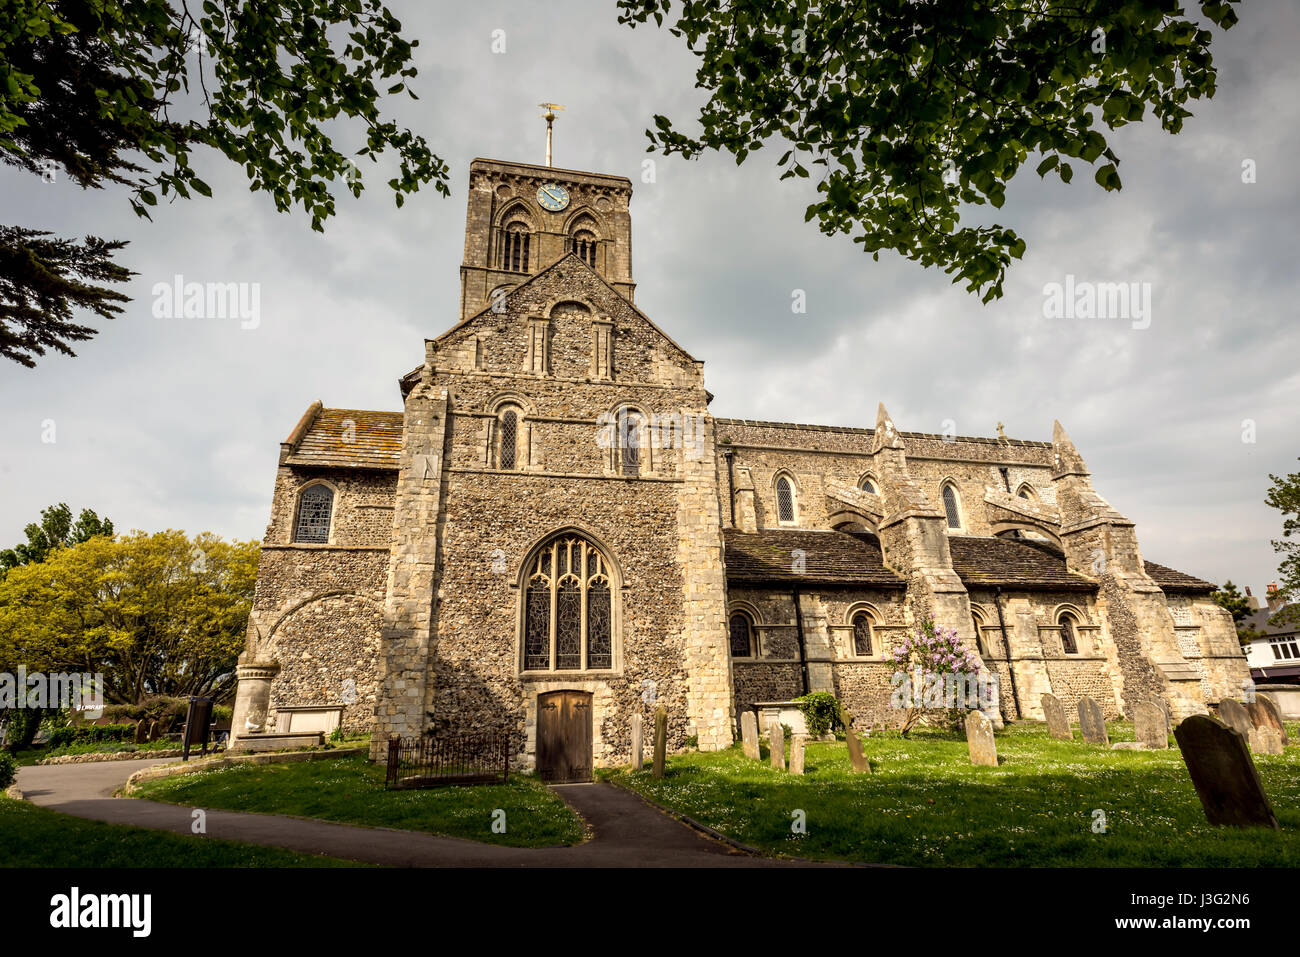 Solid Foundation Stock Photos Images Page Bross Haura St Mary De Church Shoreham Image